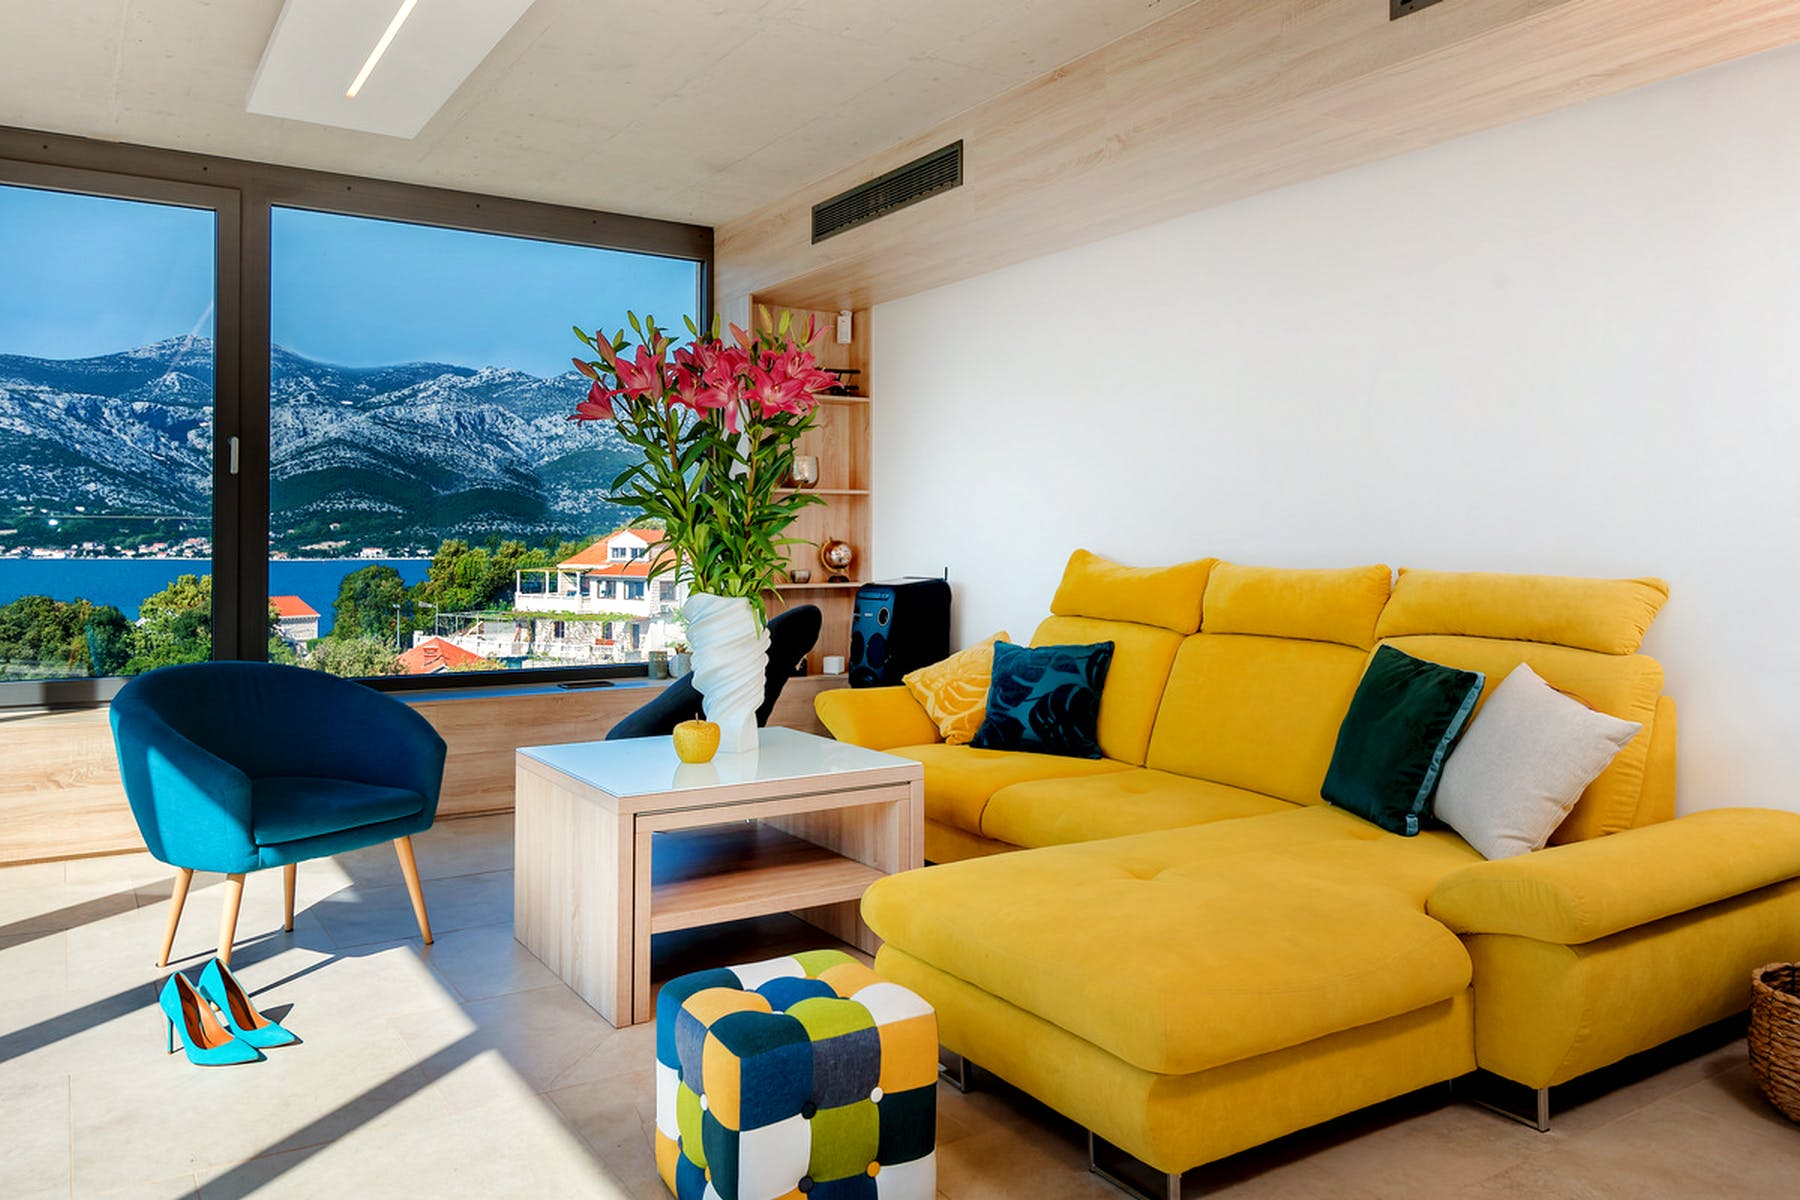 Yellow design to brighten up the room